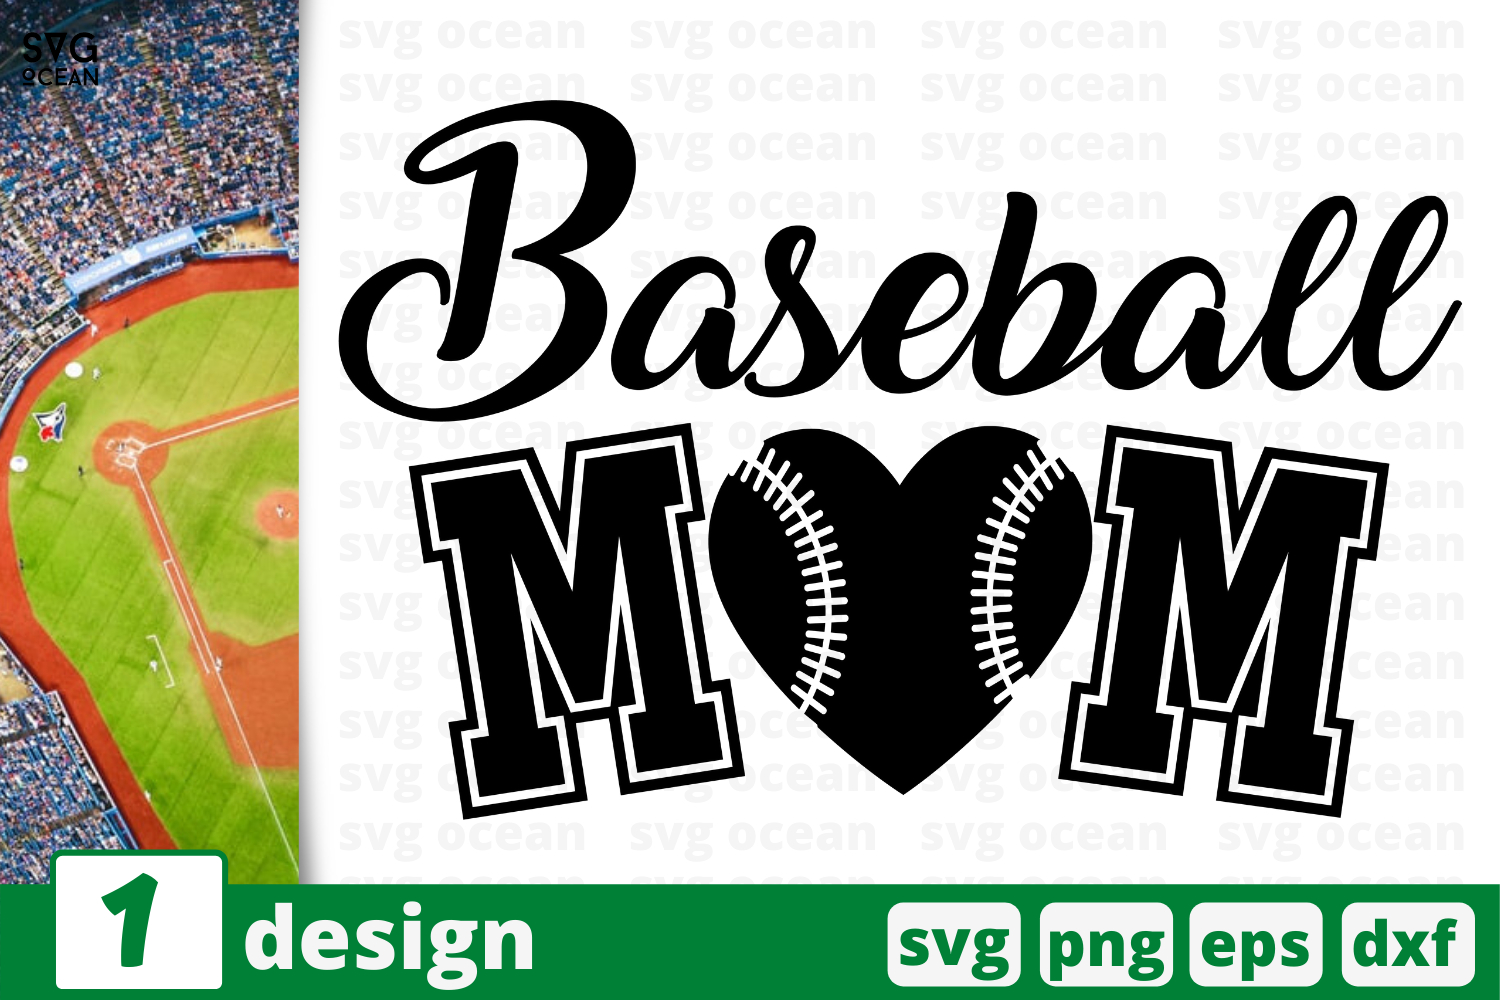 Download Free Baseball Mom Graphic By Svgocean Creative Fabrica for Cricut Explore, Silhouette and other cutting machines.